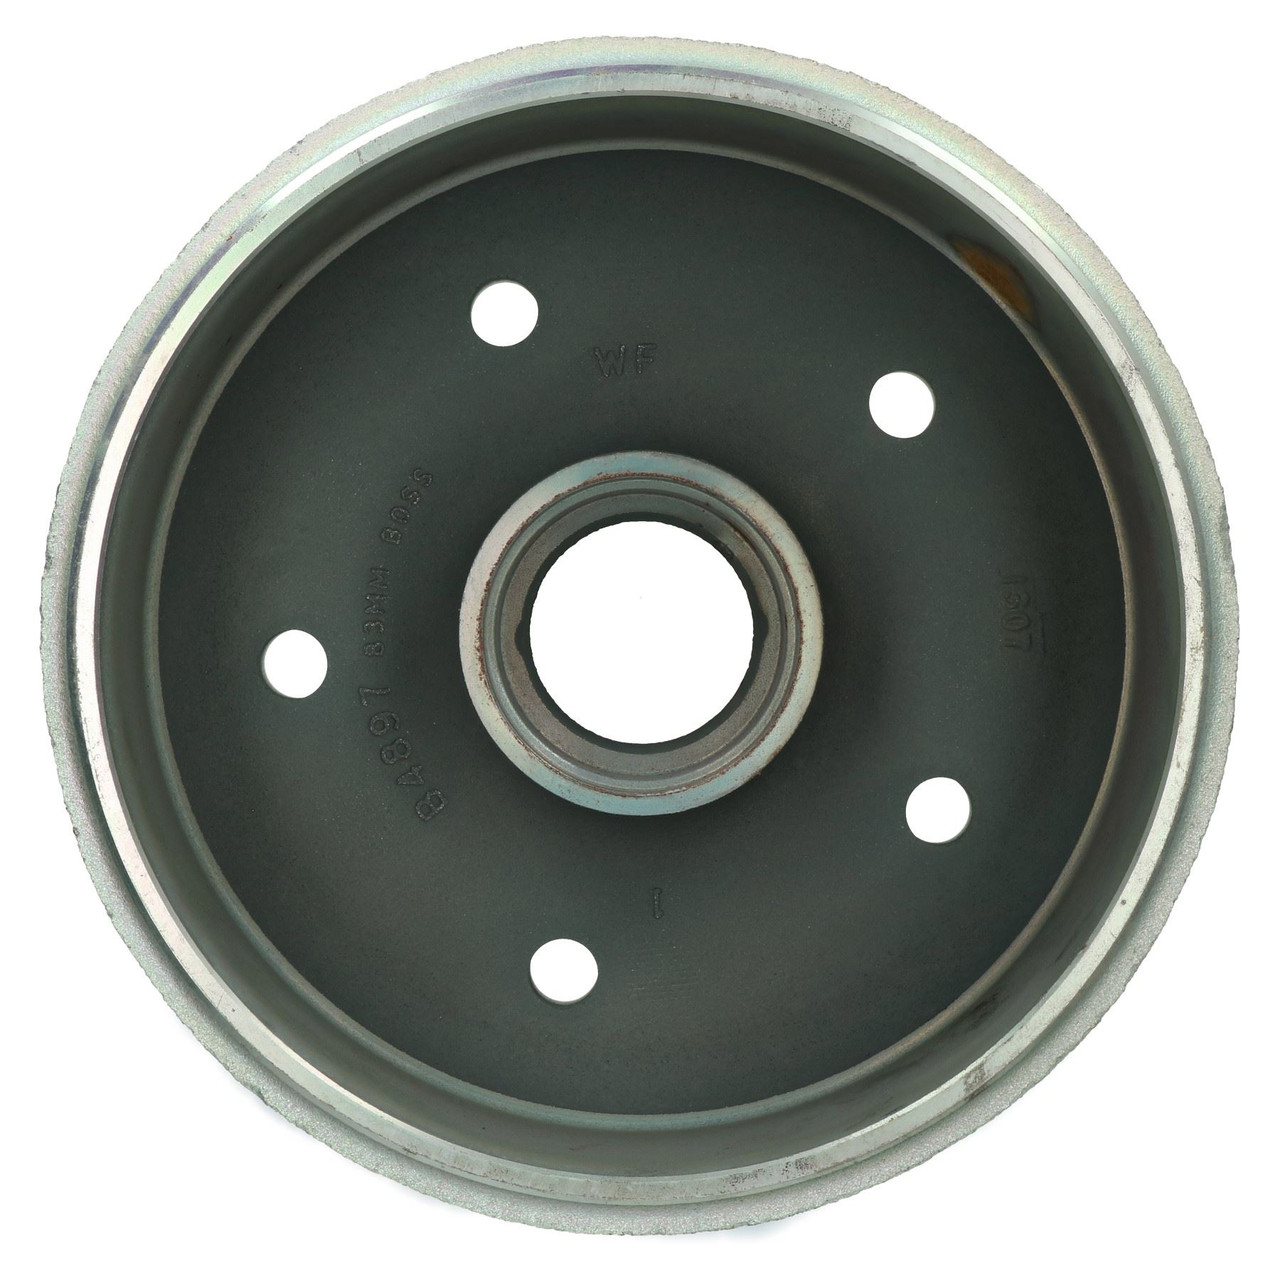 AB Tools Indespension Brake Drum for 2900kg 3000kg 3500kg Trailer 6.5 PCD 5 Stud